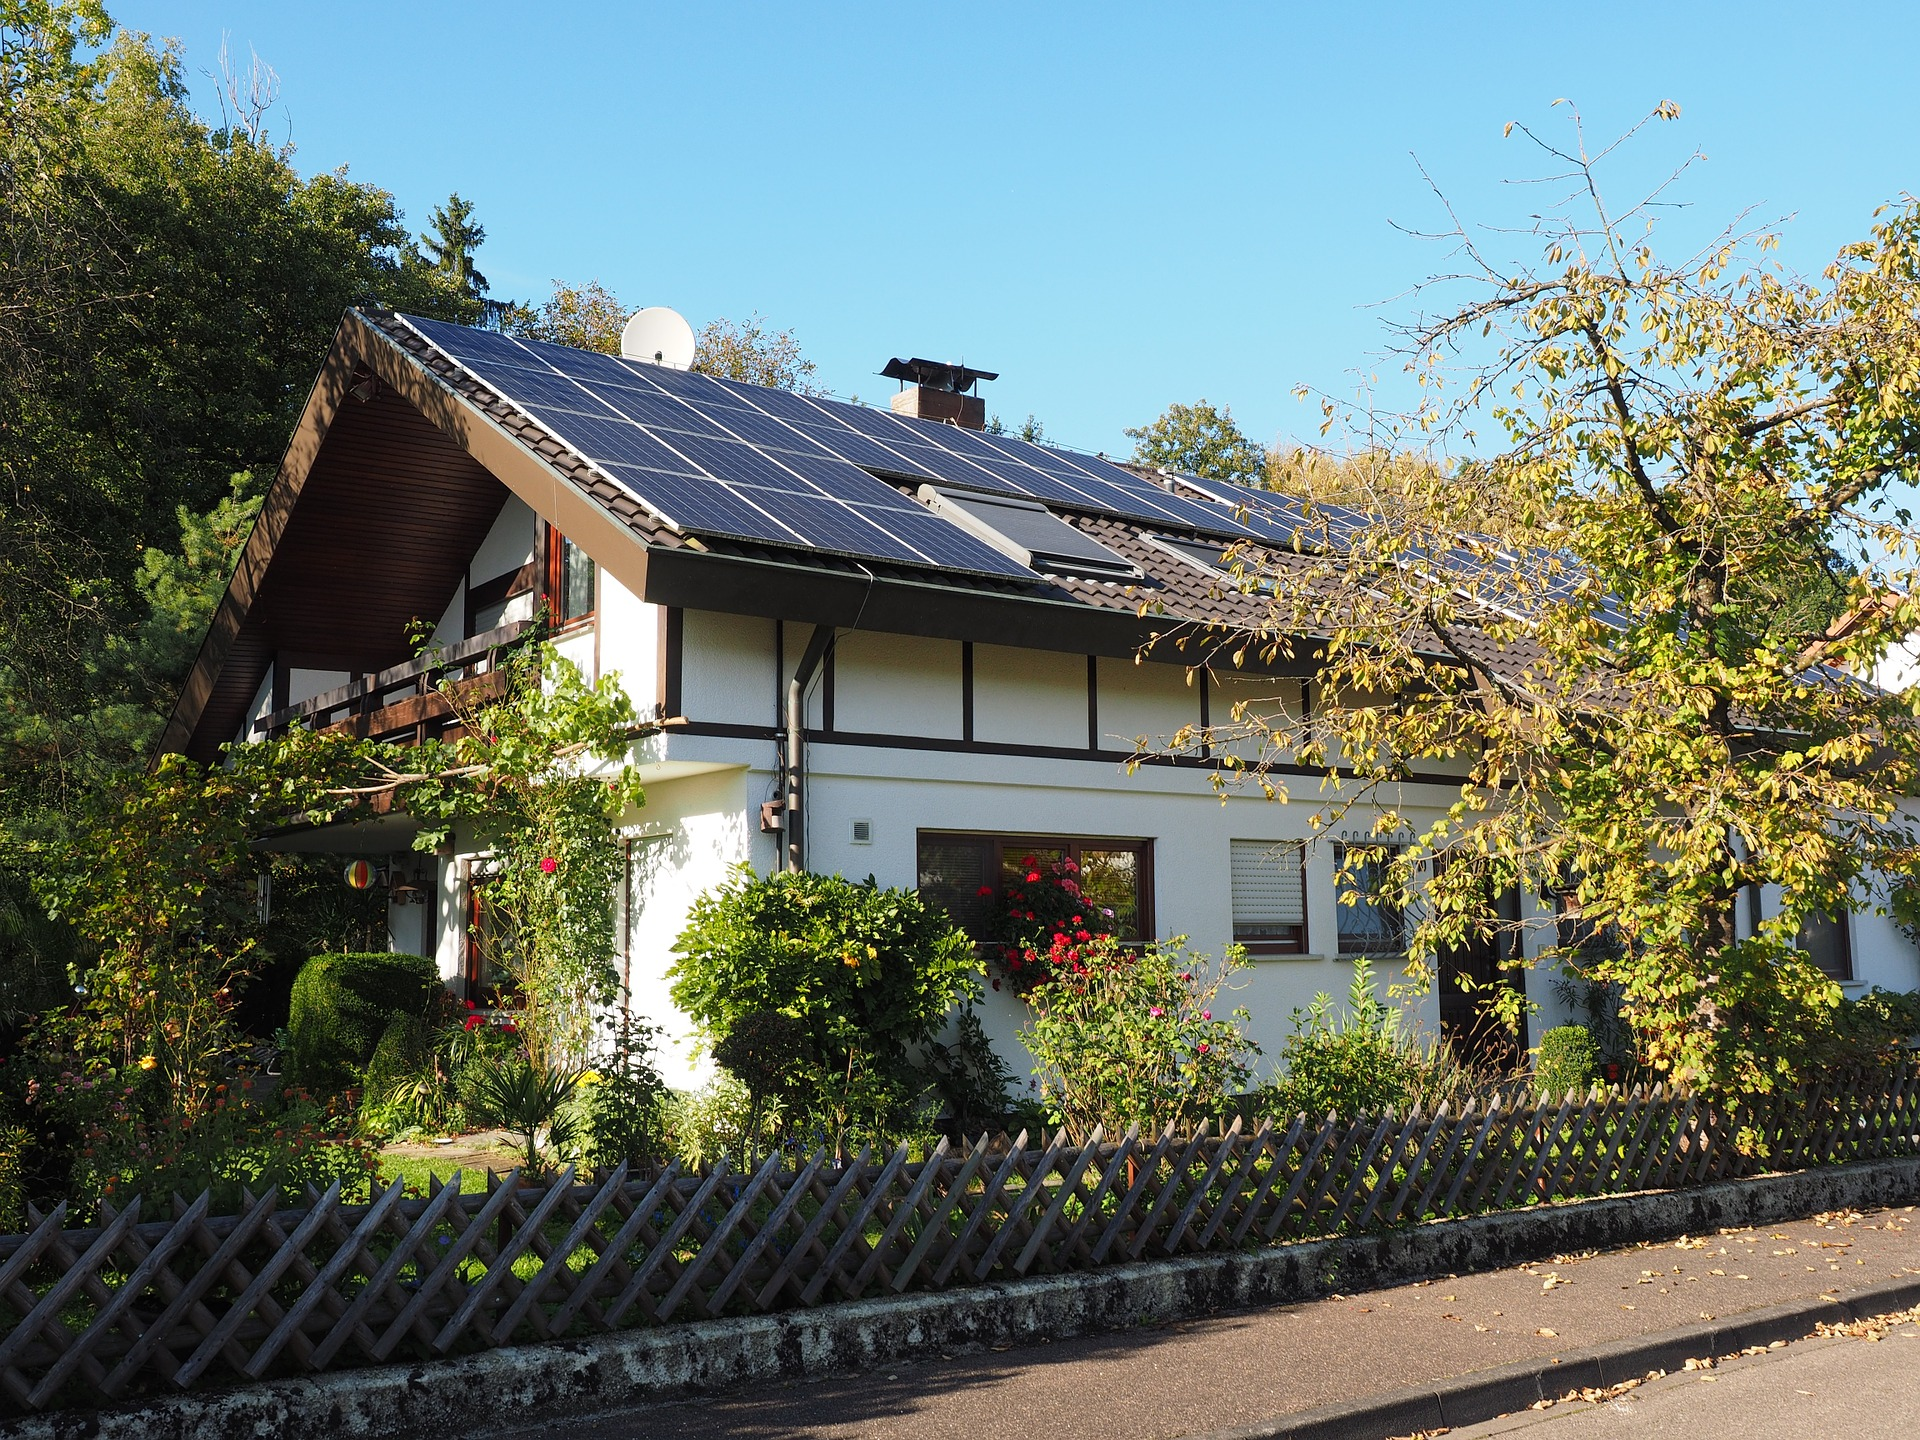 passive solar home design tips - realtybiznews: real estate news